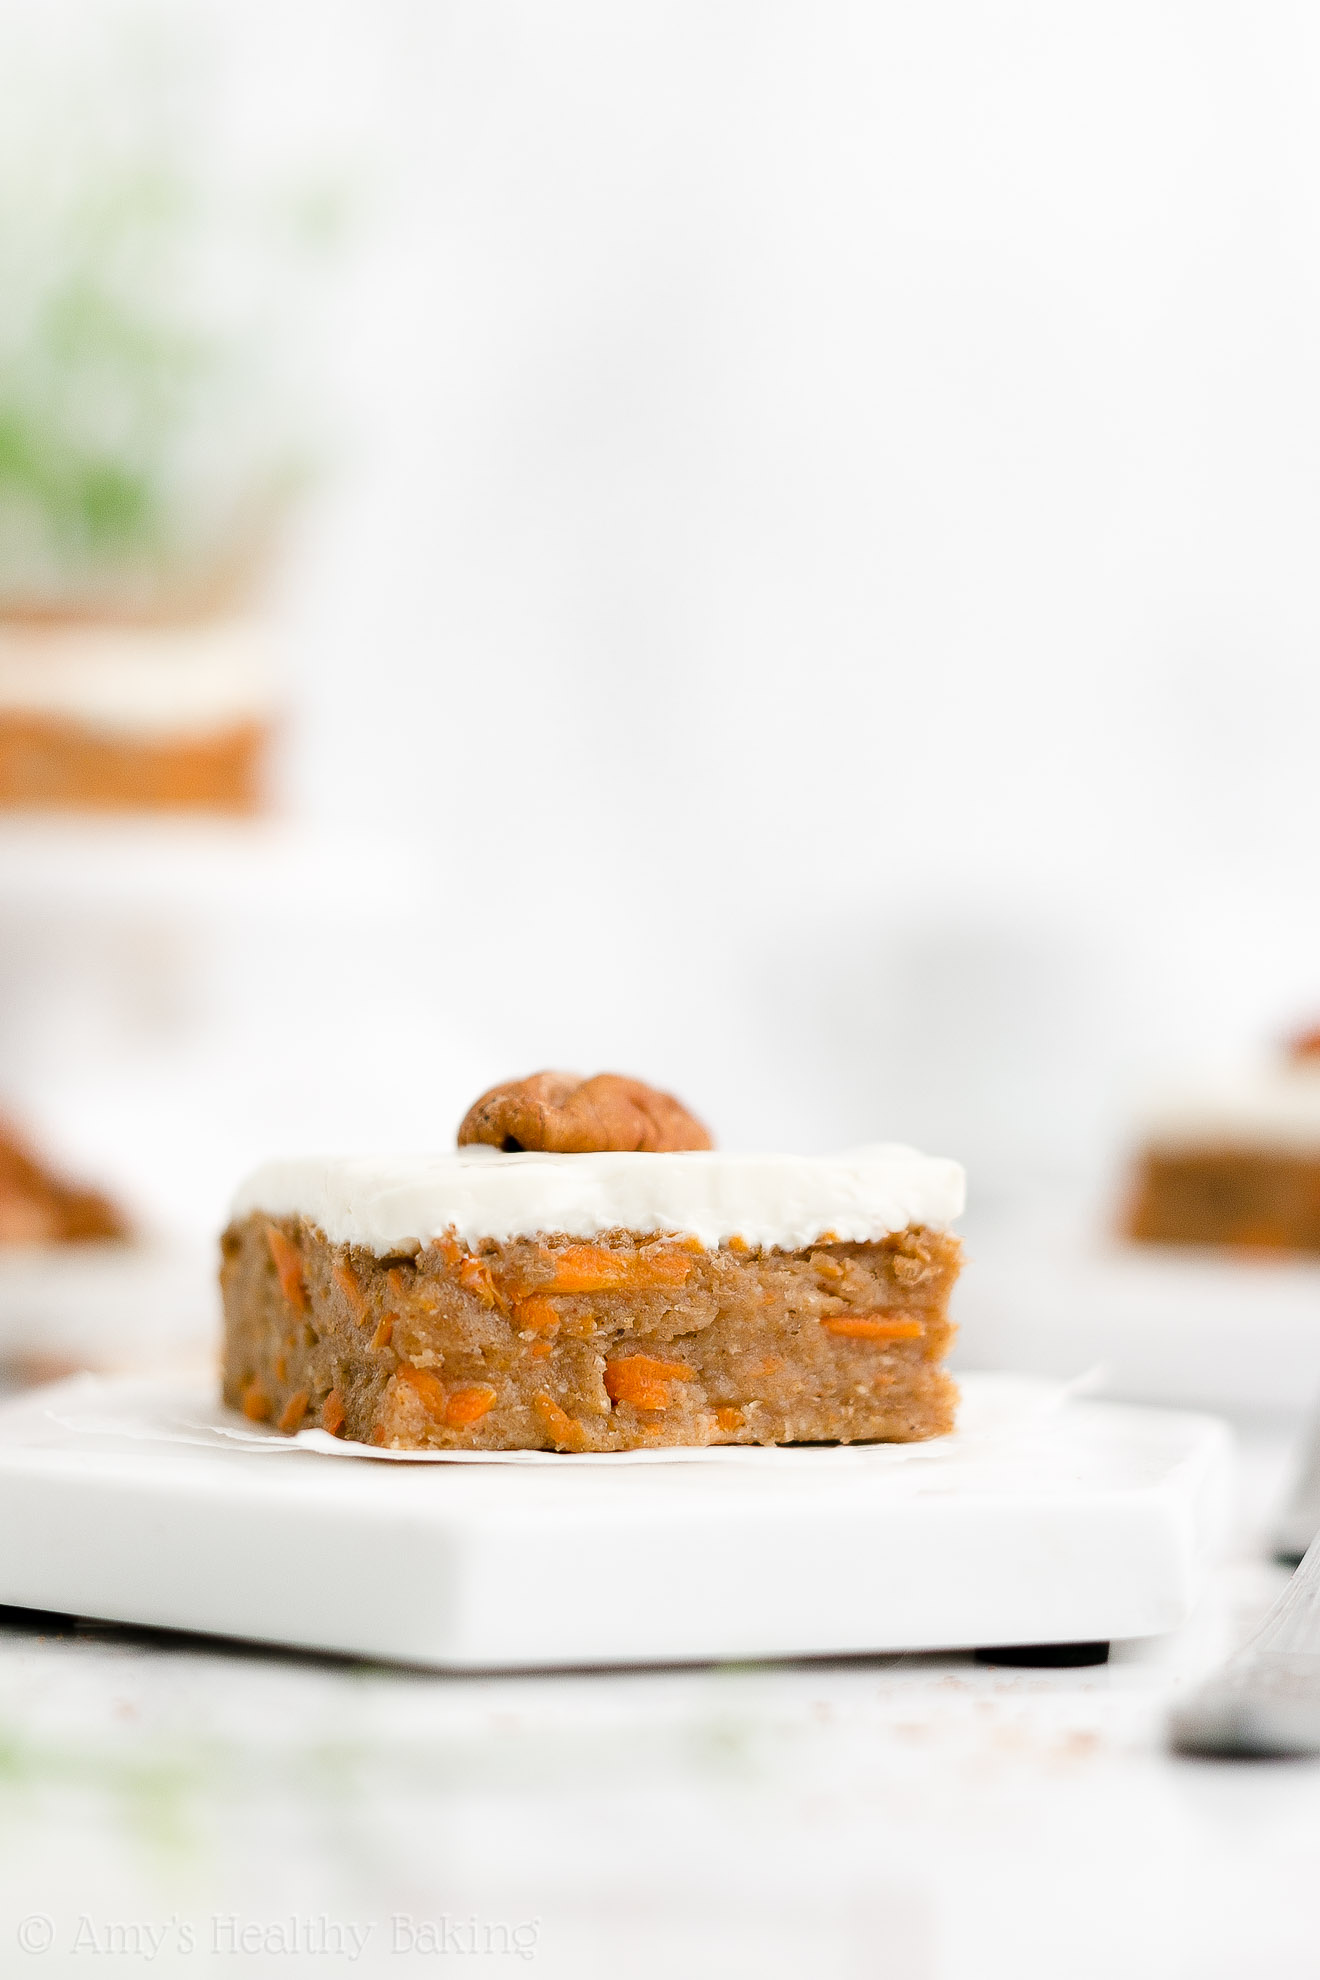 Healthy Clean Eating Greek Yogurt Carrot Cake Bars with Cream Cheese Frosting